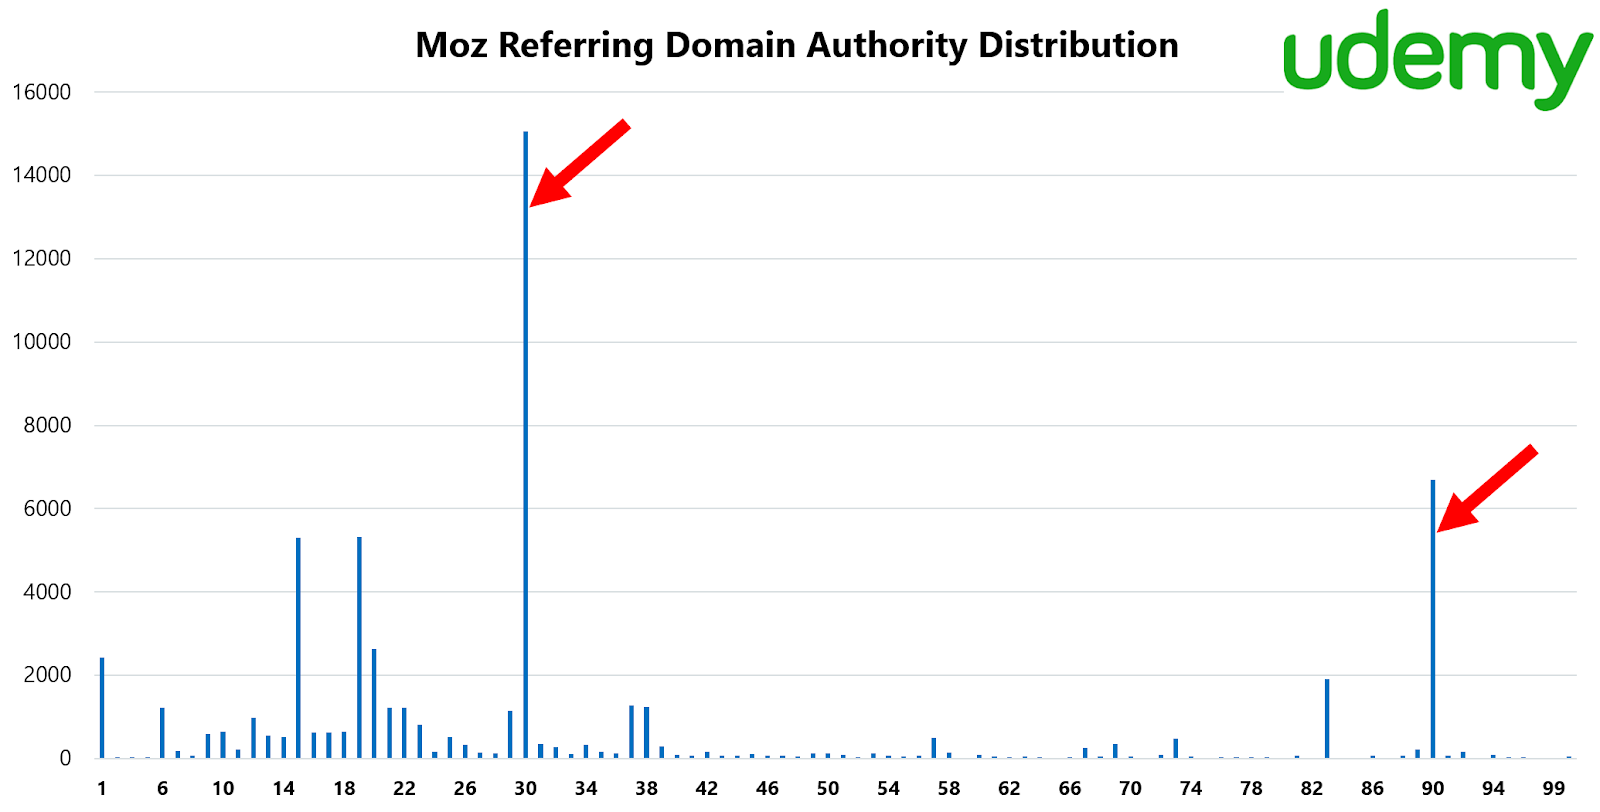 Moz Referring domain Authority